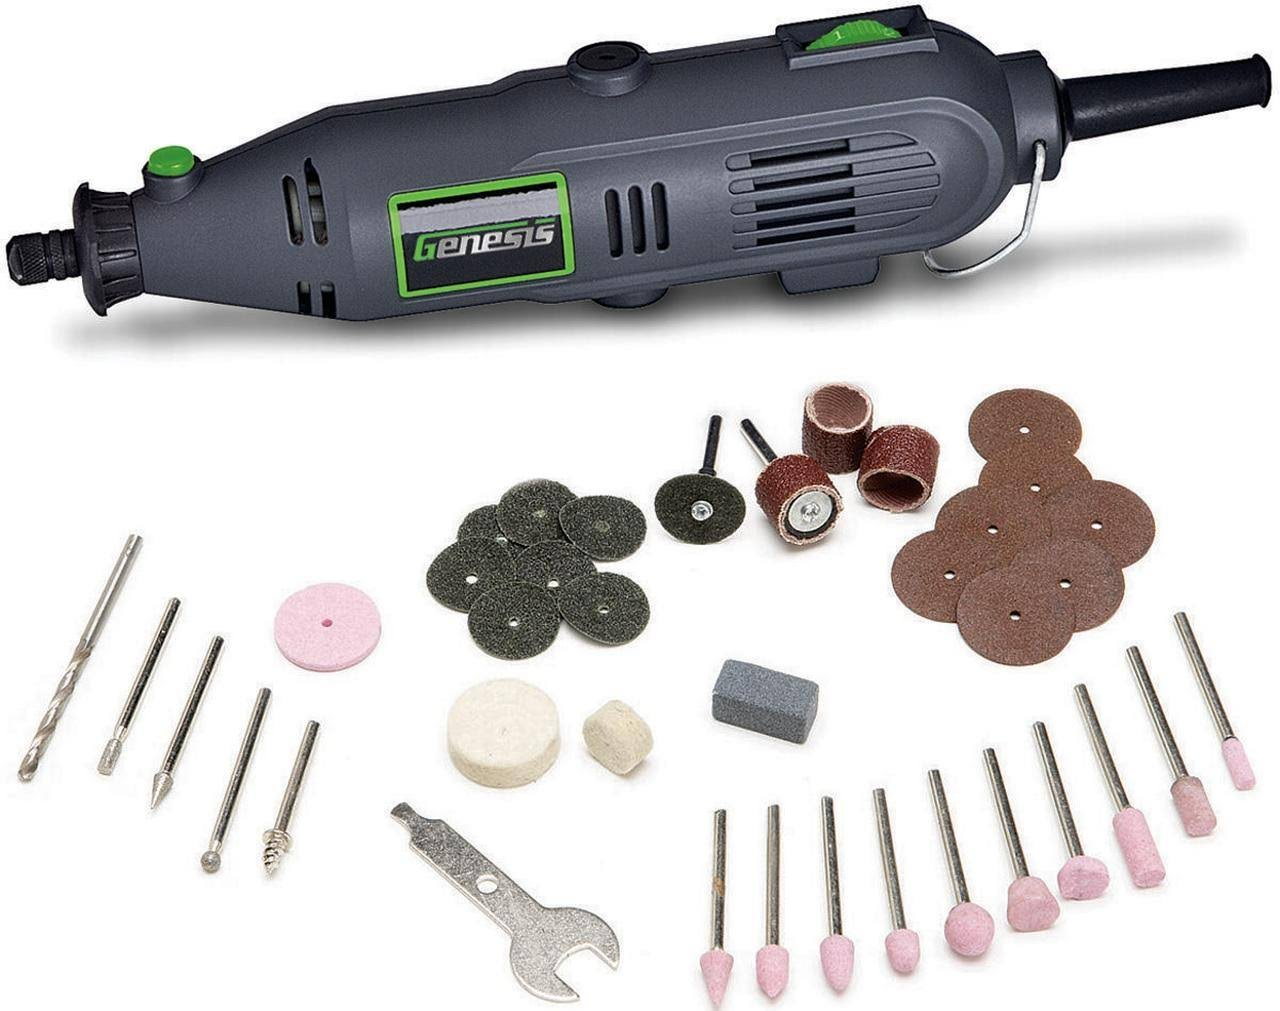 Genesis Variable Speed Rotary Tool - with 40 Accessories, Grey, 120V